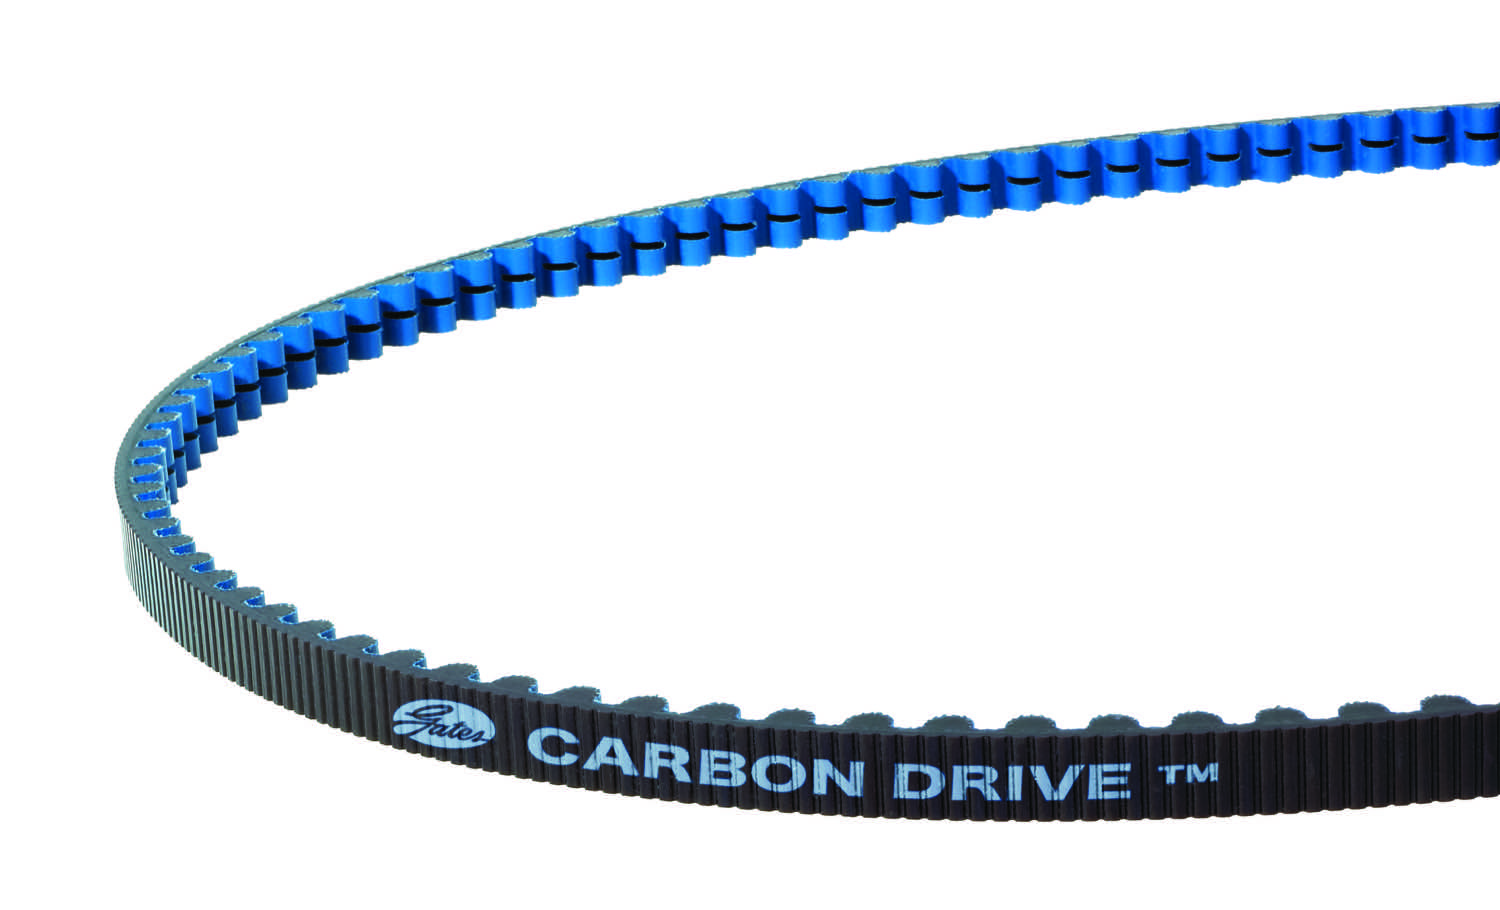 An Absolute Belter Journal Harley Davidson Timing Belt Gates Corporation Is The Leading Supplier Of Belts For Automotive And Industrial Uses Worldwide Every Motorcycles Run On A